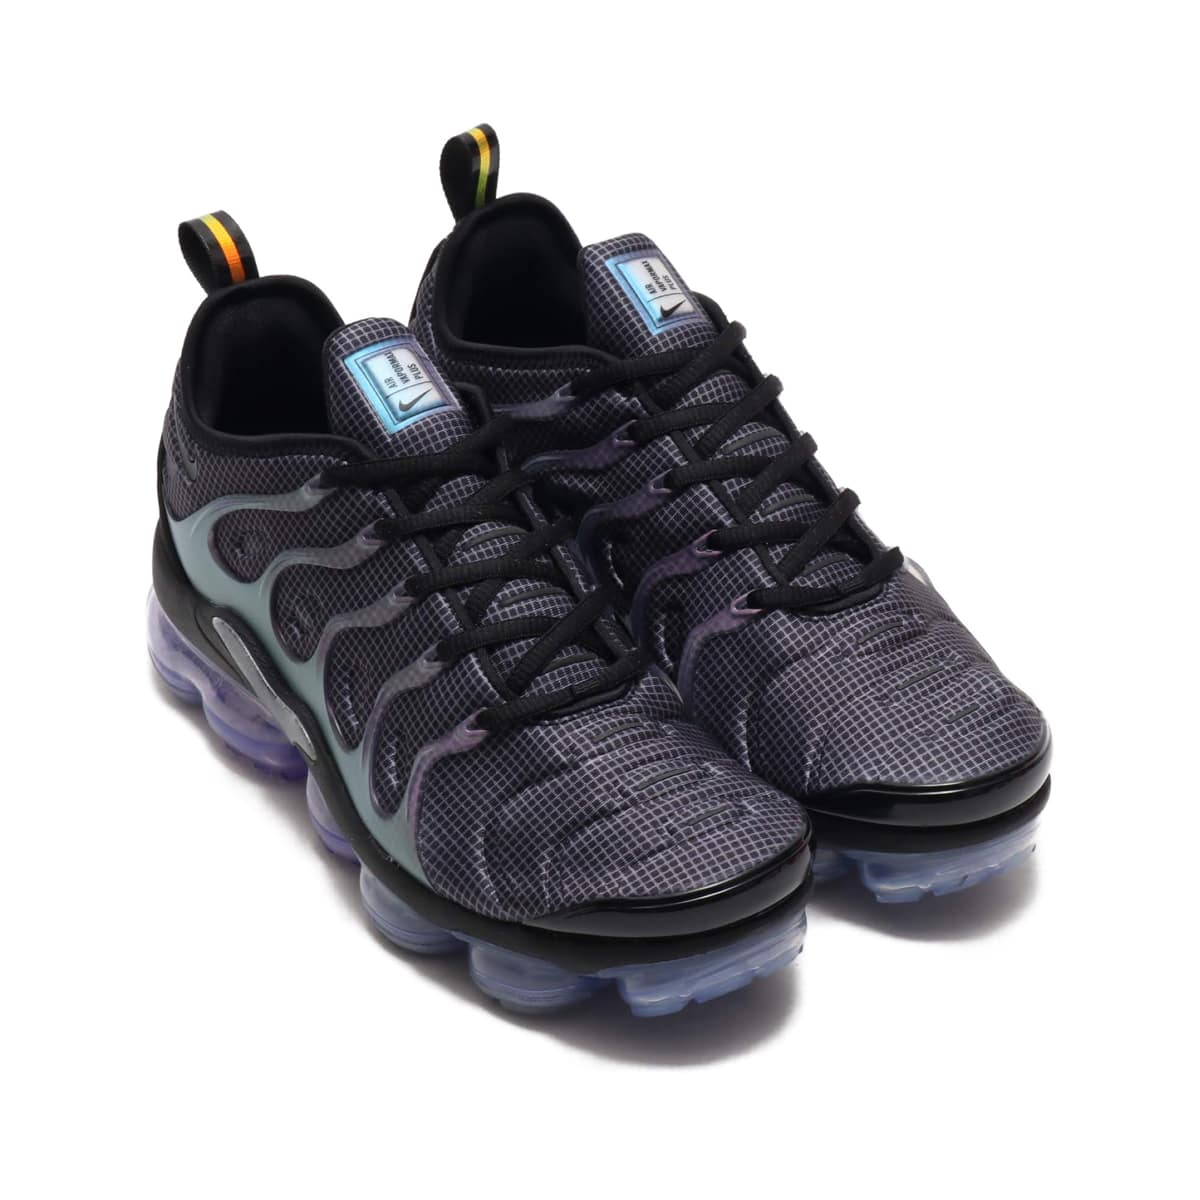 NIKE AIR VAPORMAX PLUS BLACK/BLACK-DARK GREY-ALUMINUM 19SP-I_photo_large